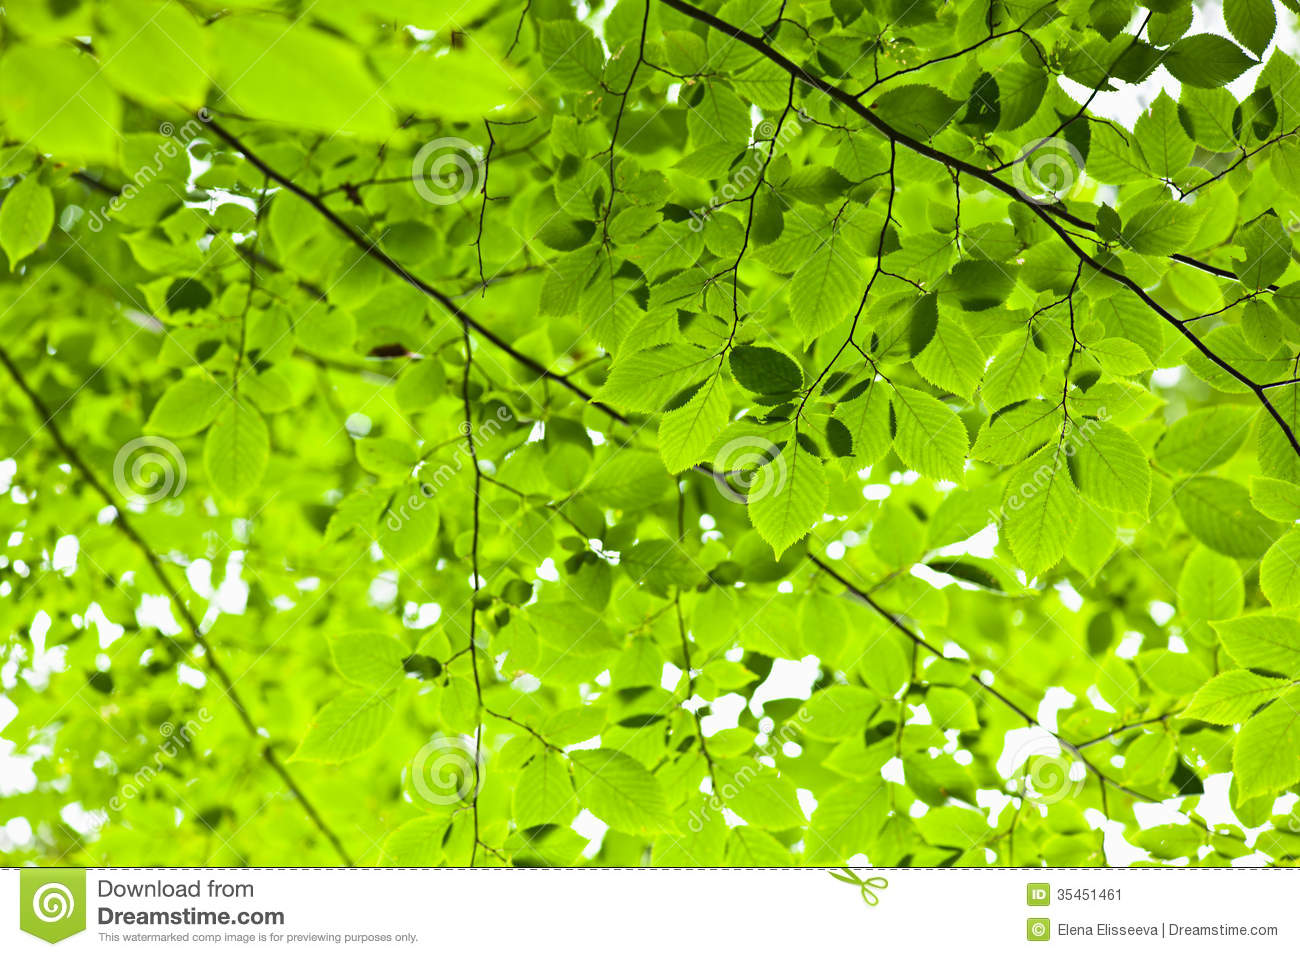 Nature Images 2mb: Green Spring Leaves Stock Image. Image Of Details, Leaves